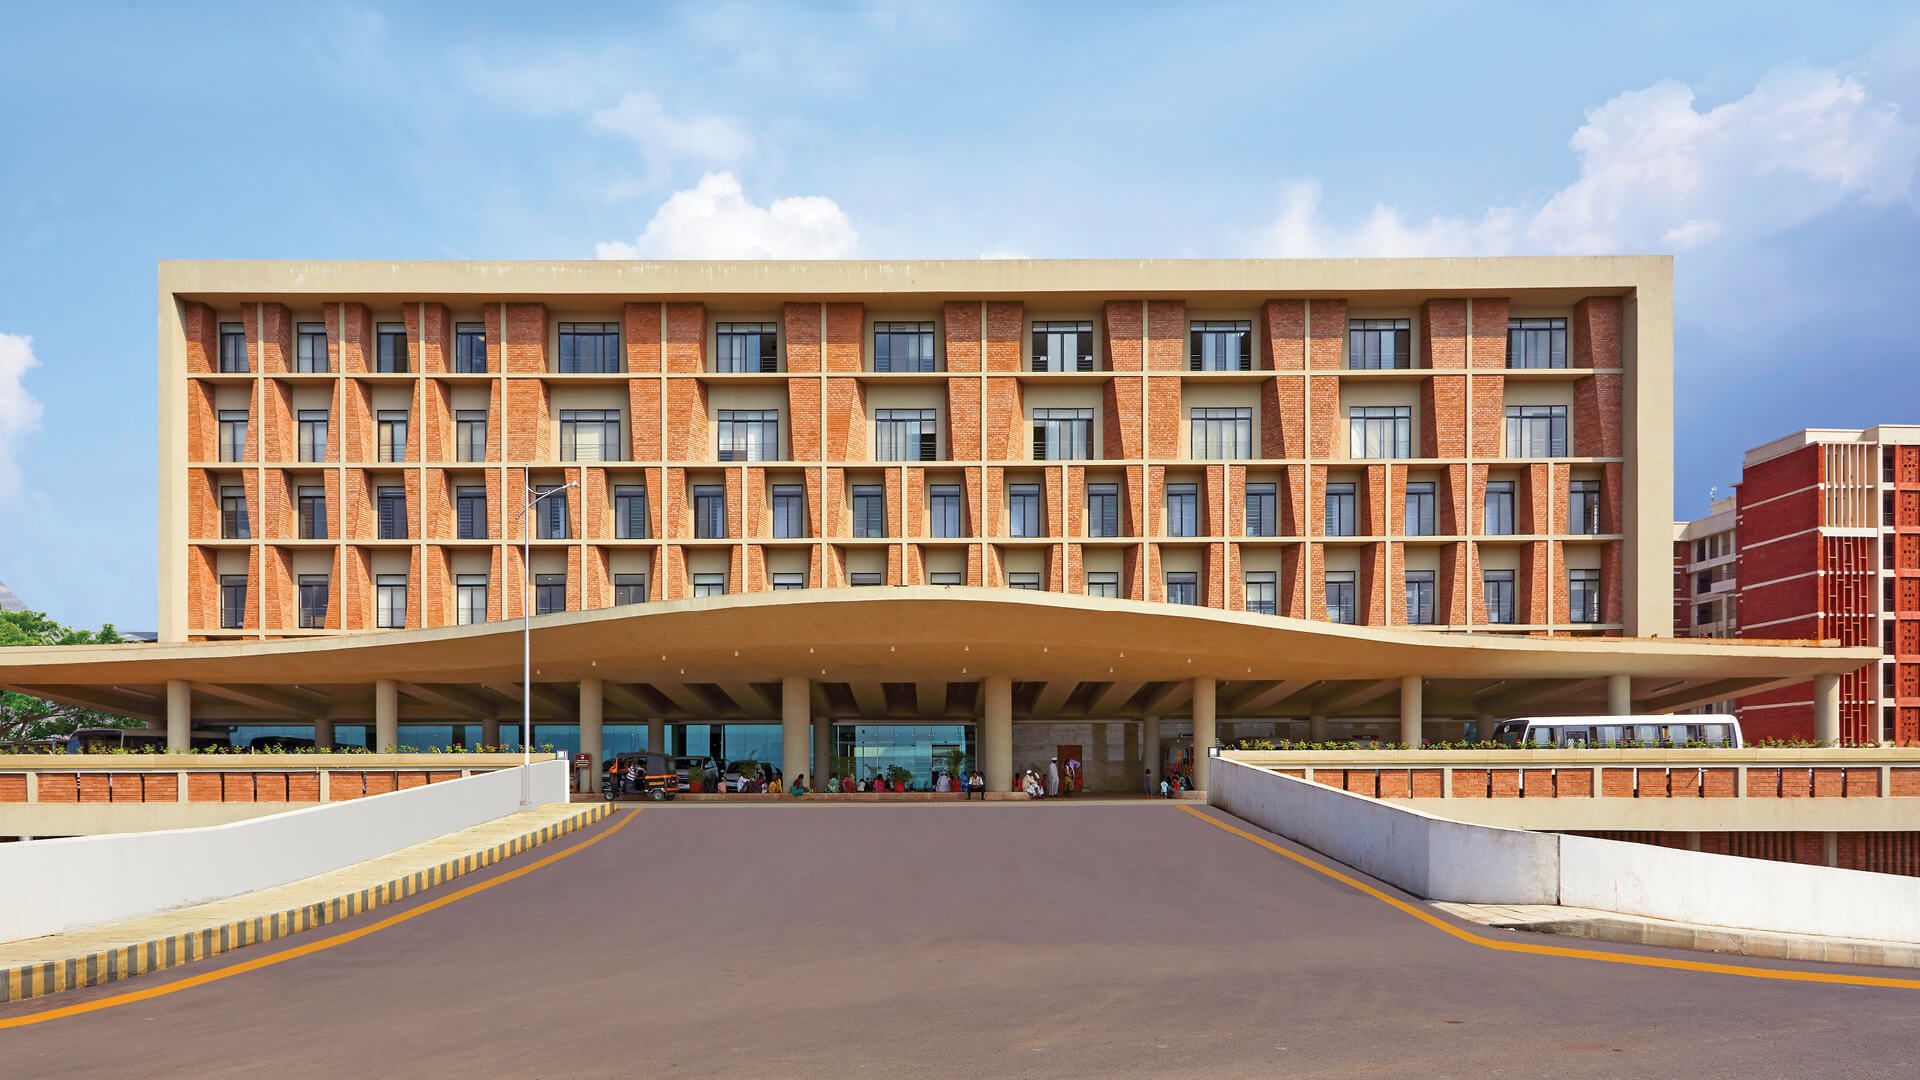 The Symbiosis University Hospital and Research Centre designed by I.M. Kadri and Architects is located amid Pune's Symbiosis Institute campus | Symbiosis University Hospital and Research Centre | IMK Architects, I.M. Kadri | STIRworld